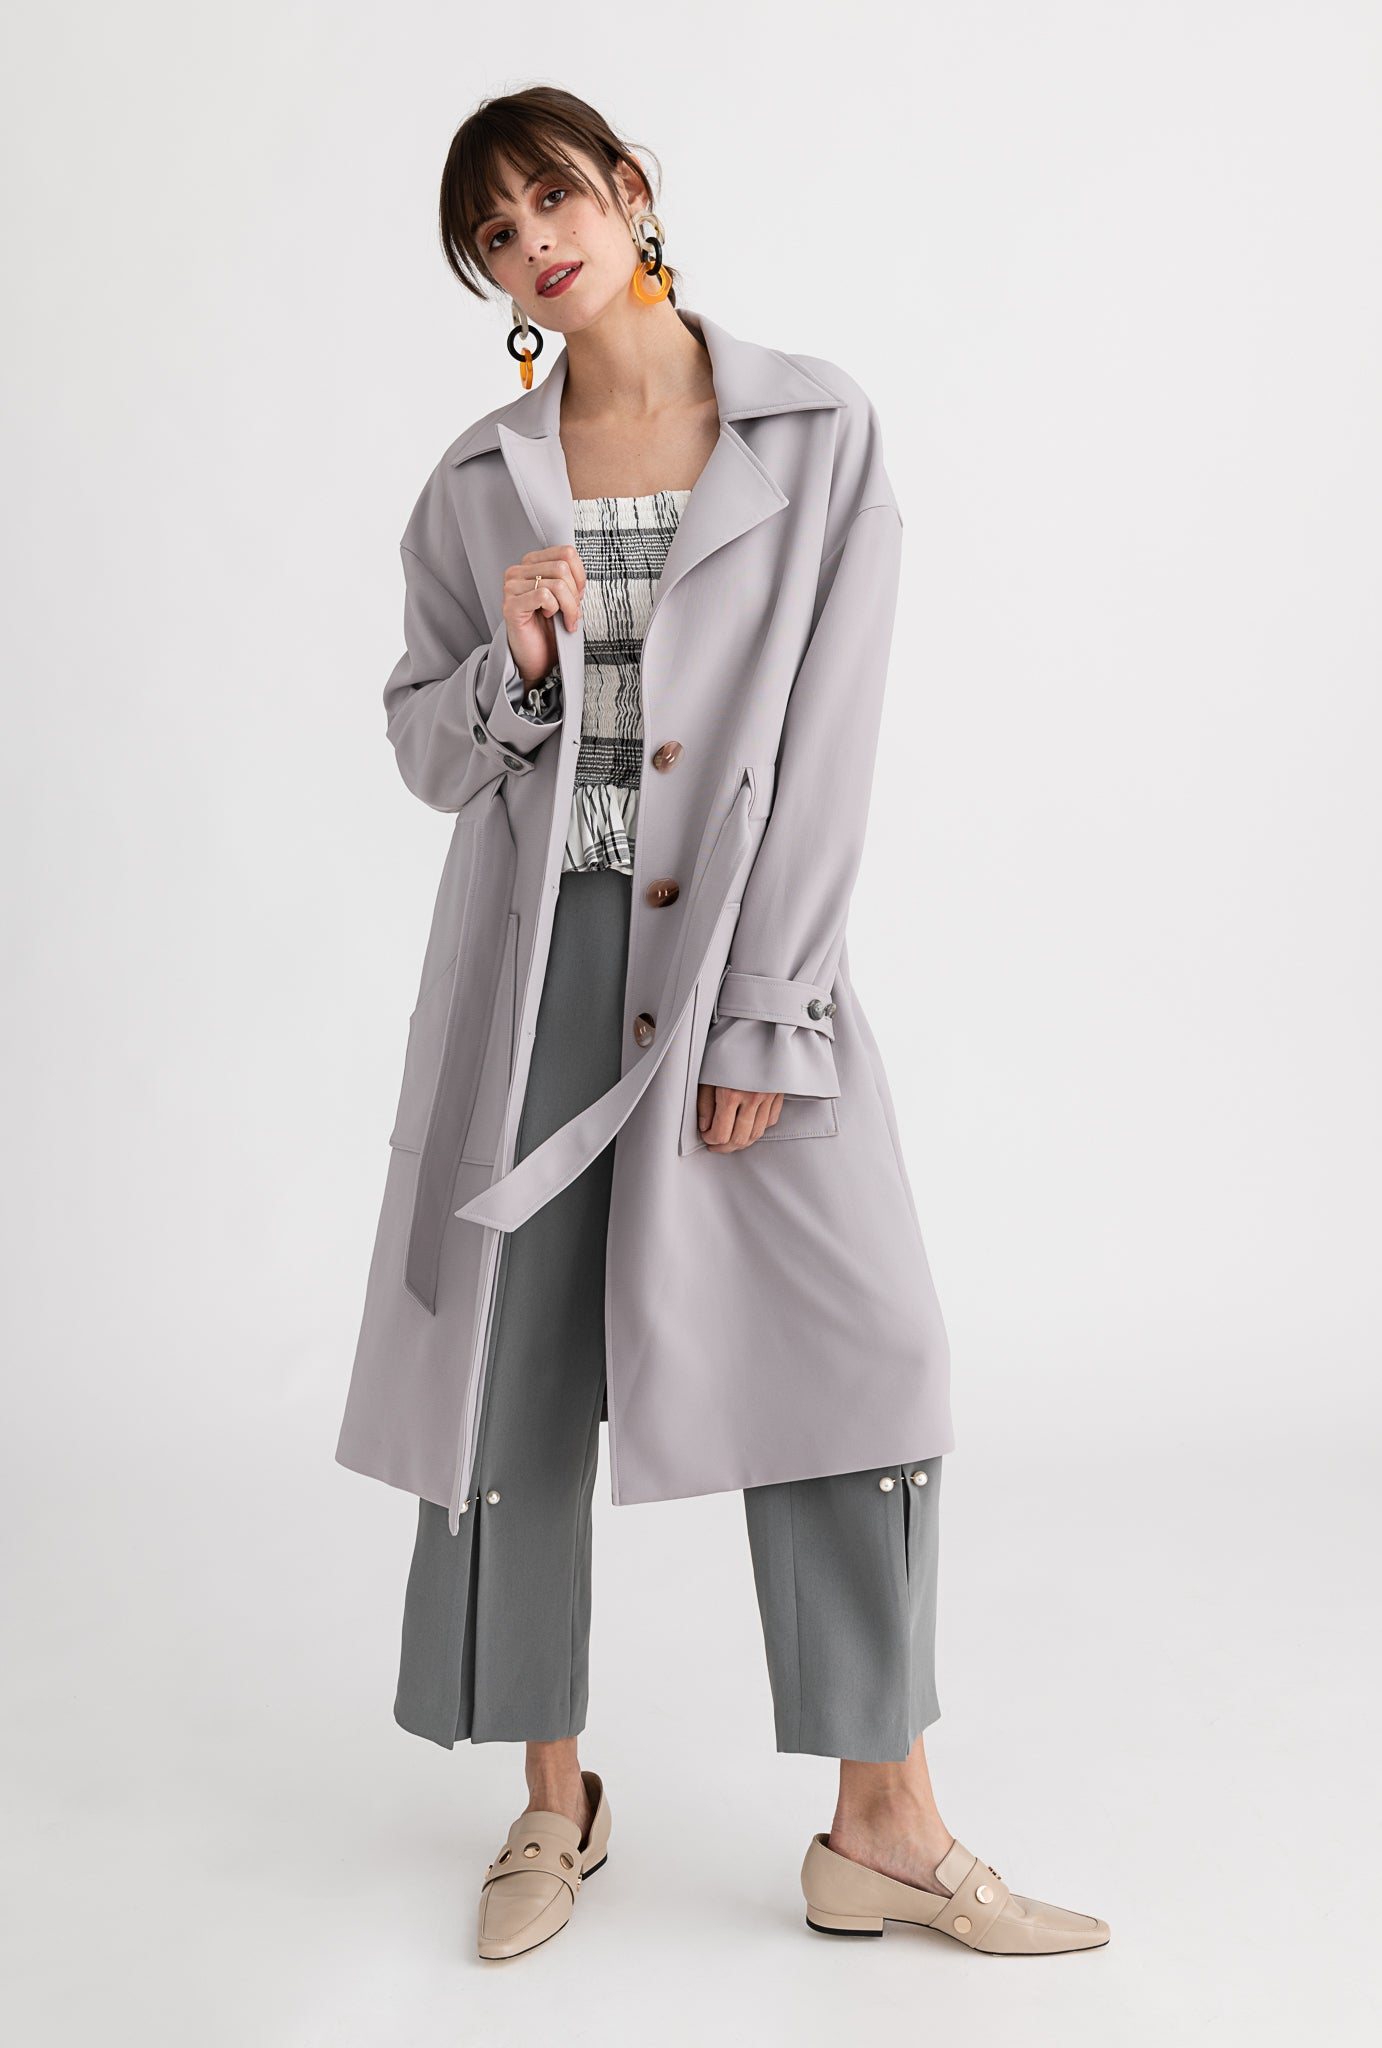 Darcy Trench - Stone - Grey flowy drop shoulder trench coat with belt tie - Petite Studio NYC